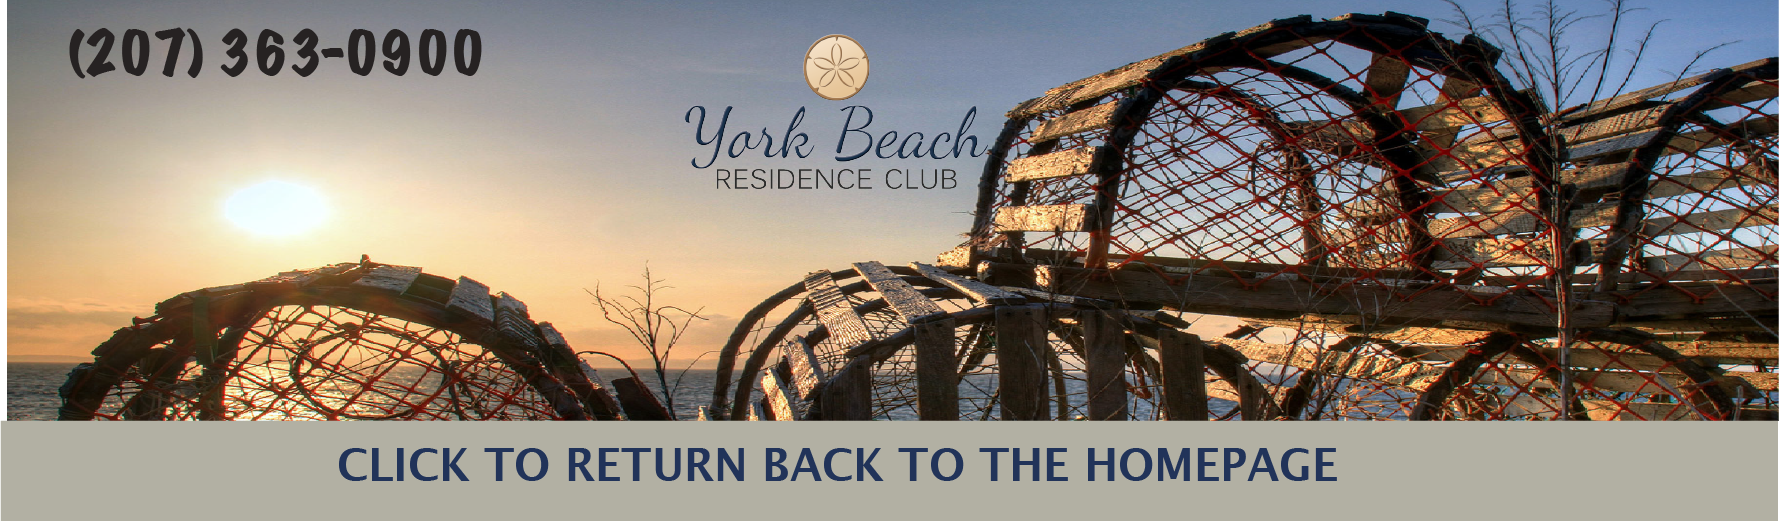 York Beach Residence Club